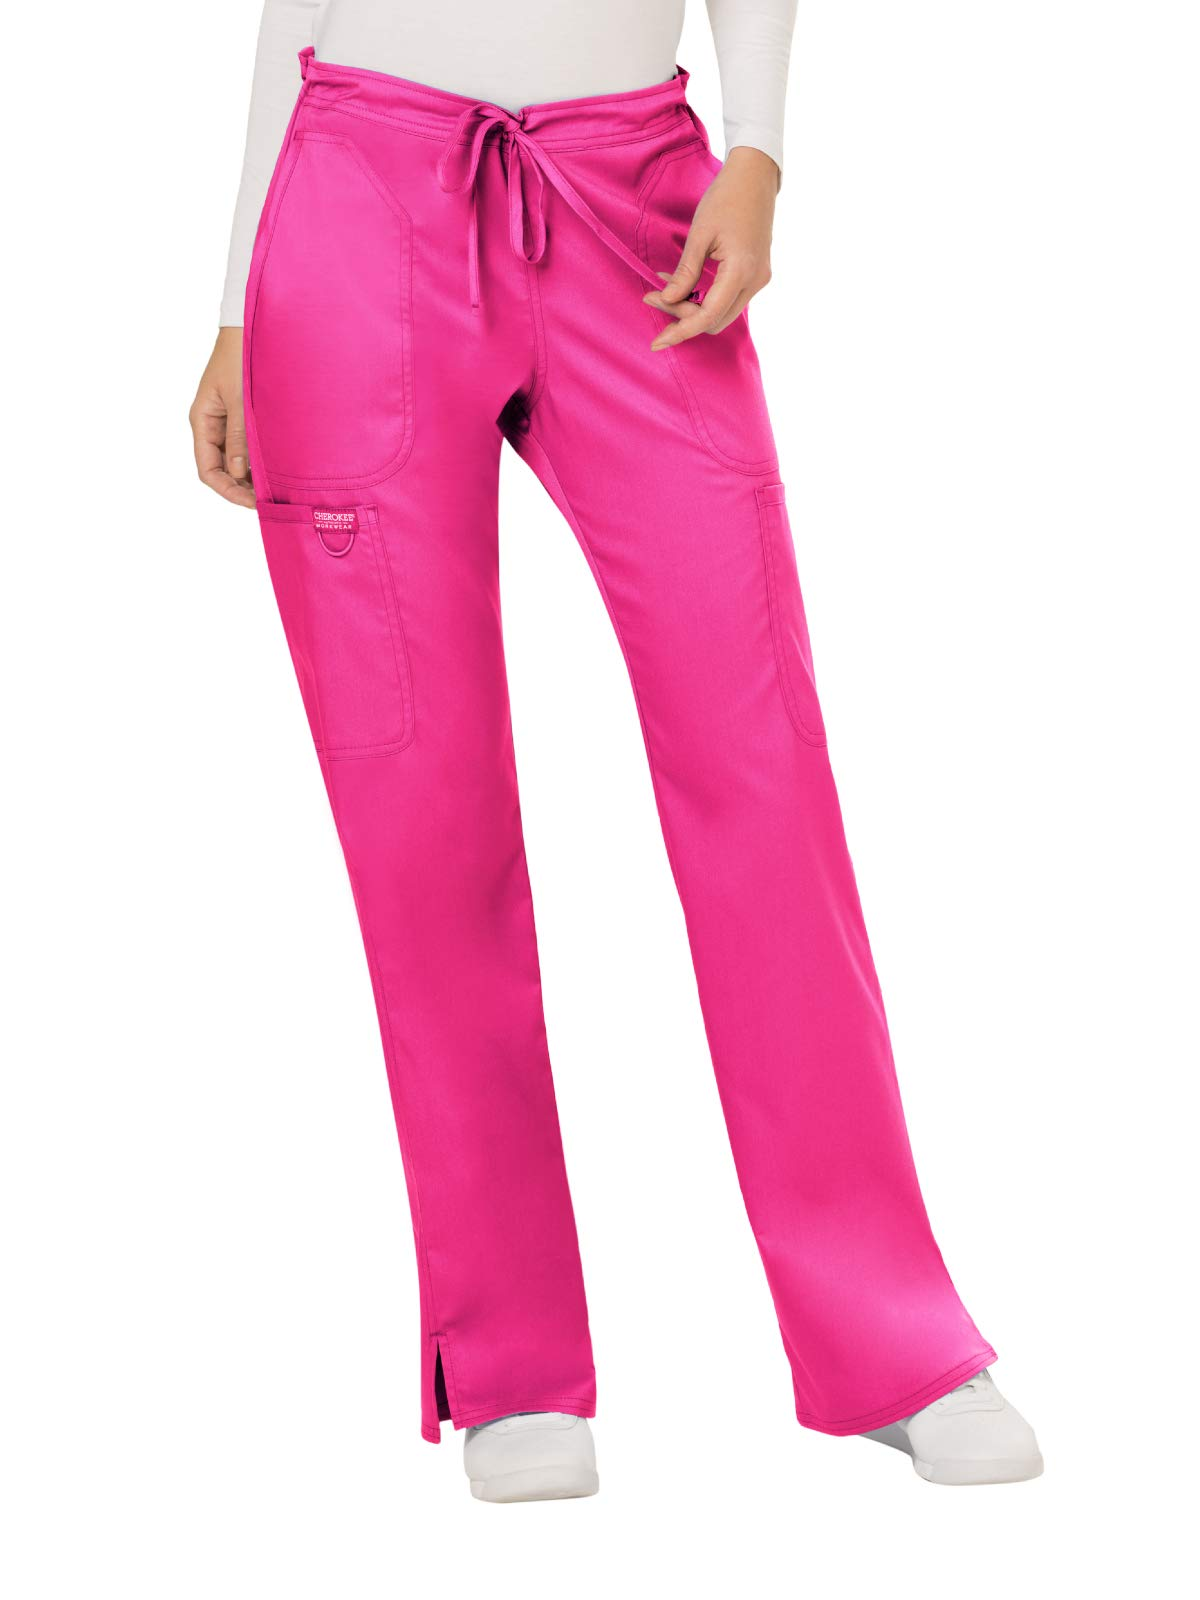 Cherokee WW Revolution WW120 Women's Mid-Rise Drawstring Cargo Pant, Electric Pink, Large by Cherokee